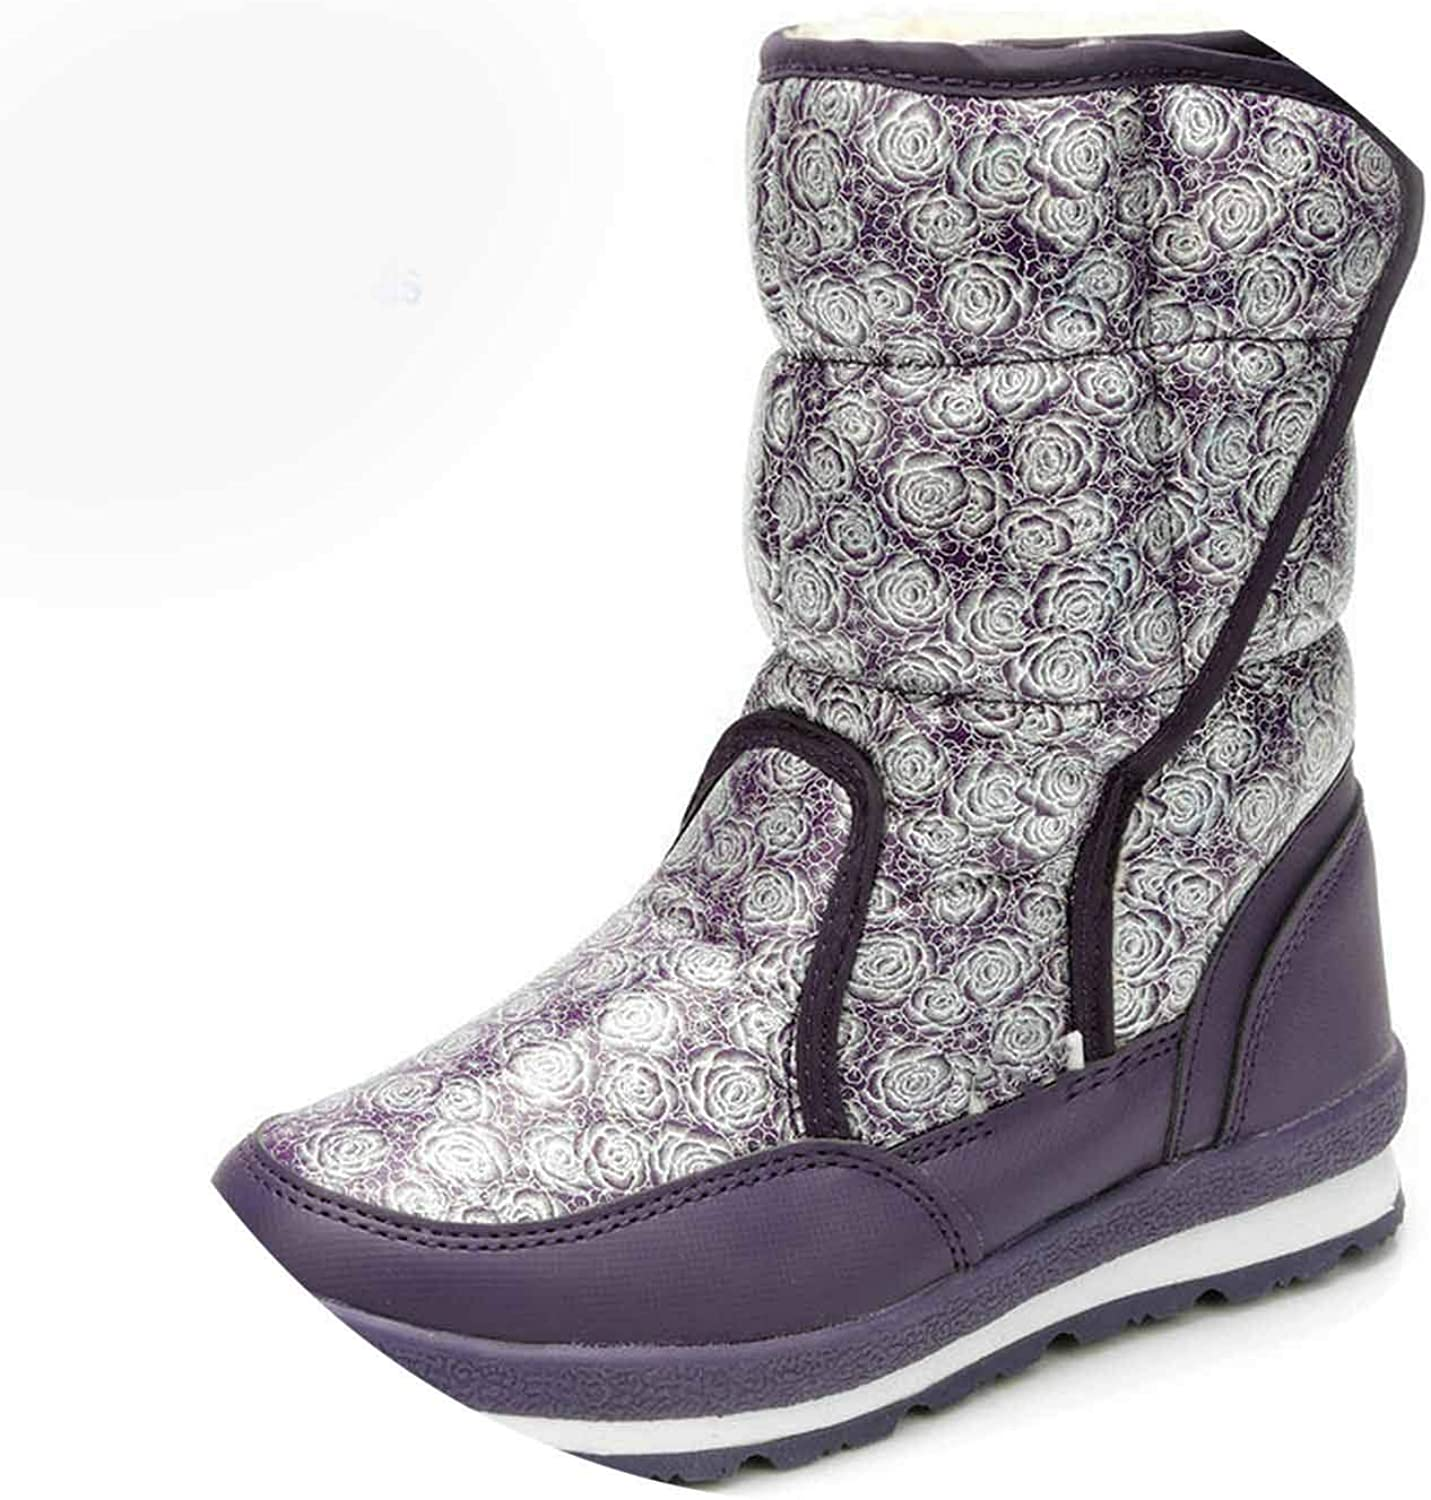 Thirsty-X Purple Women Boots shoes Brand Snow Boots Winter shoes Full Size Anti-s Warm Lining Good sel